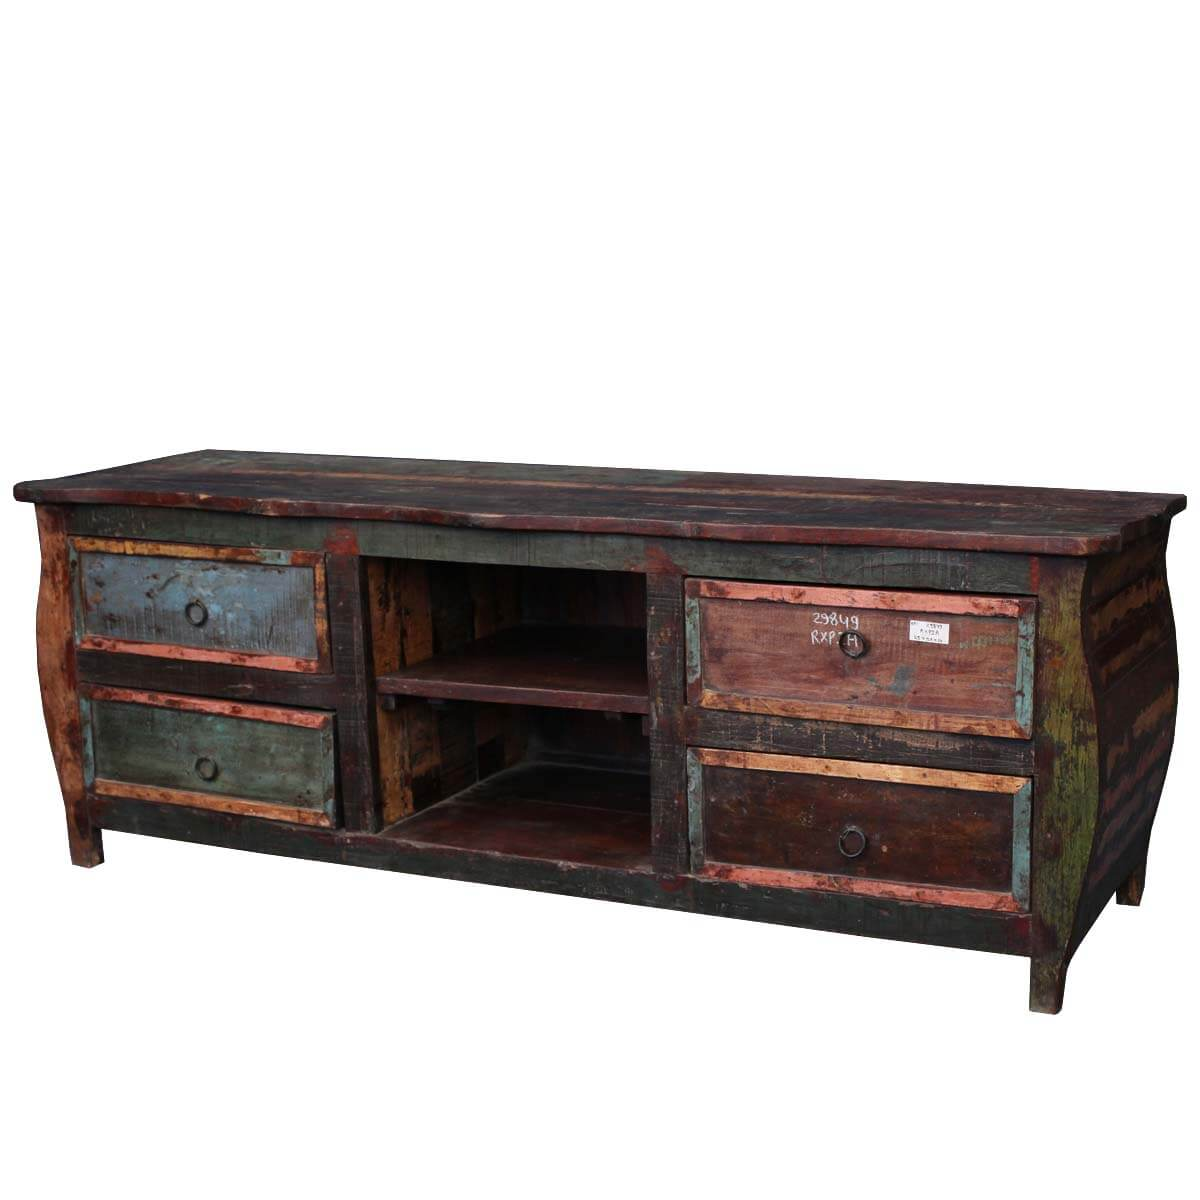 Wood Media Console Furniture ~ Reclaimed wood furniture rustic hepplewhite tv stand media